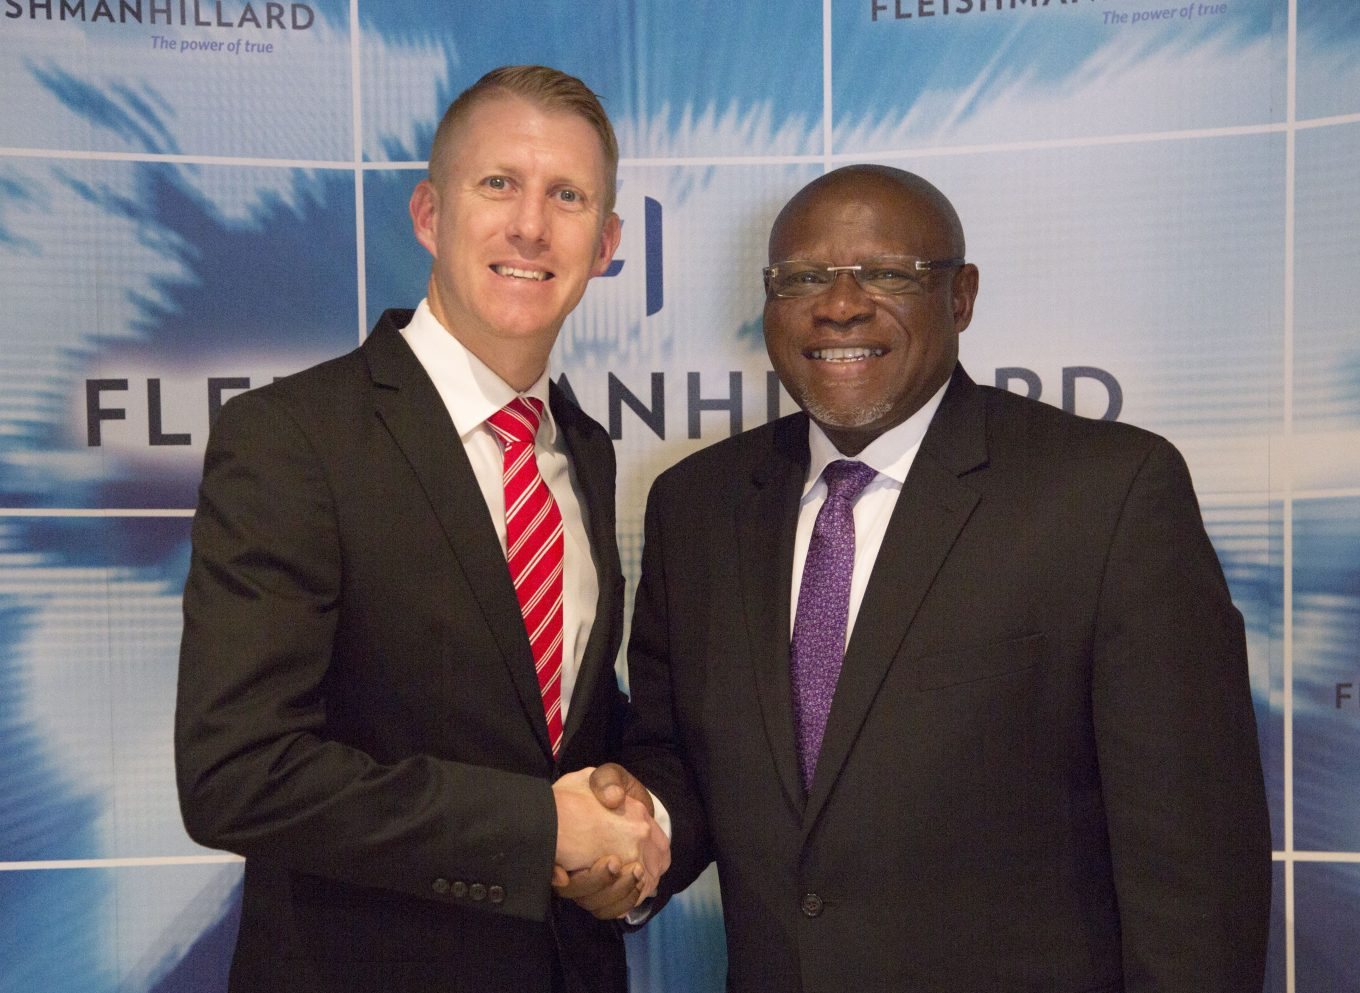 Kevin Welman, Managing Director of FleishmanHillard (left) John Ehiguese, CEO of Mediacraft (Right)